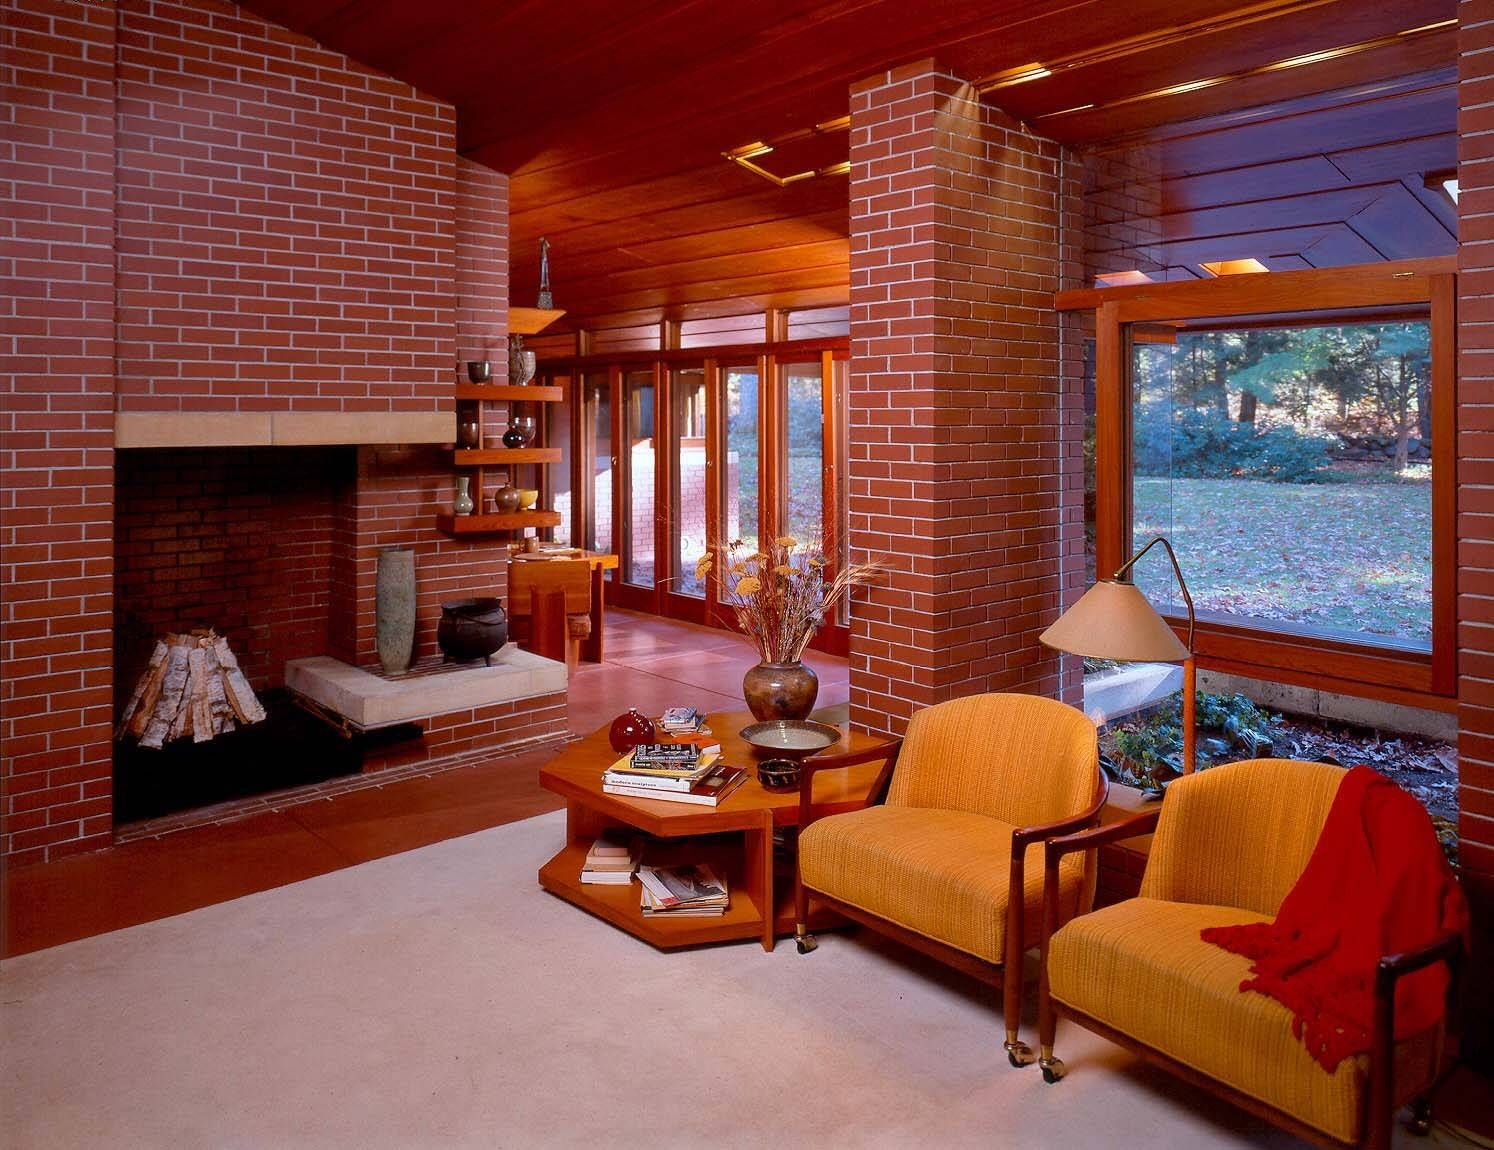 House Paint Color Guide Frank Lloyd Wright Homes Frank Lloyd Wright Interior Home